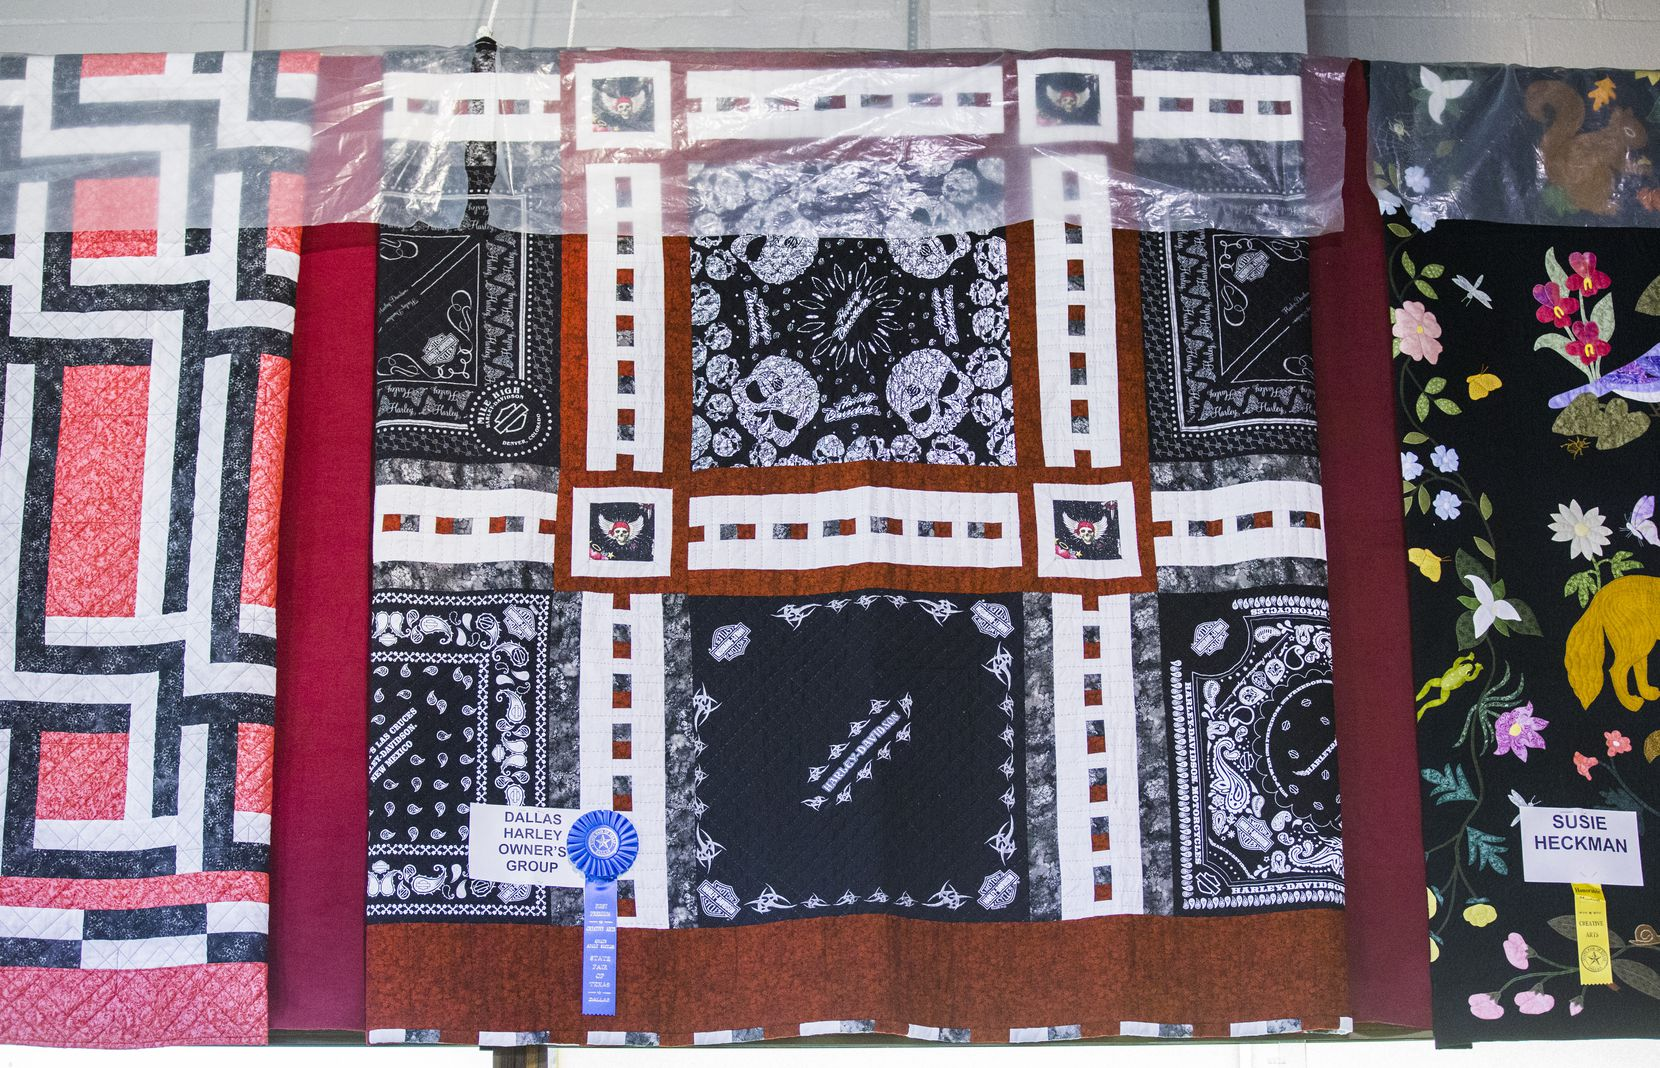 The Dallas Harley Owners Group's blue-ribbon quilt , in the Creative Arts Building at the State Fair of Texas.